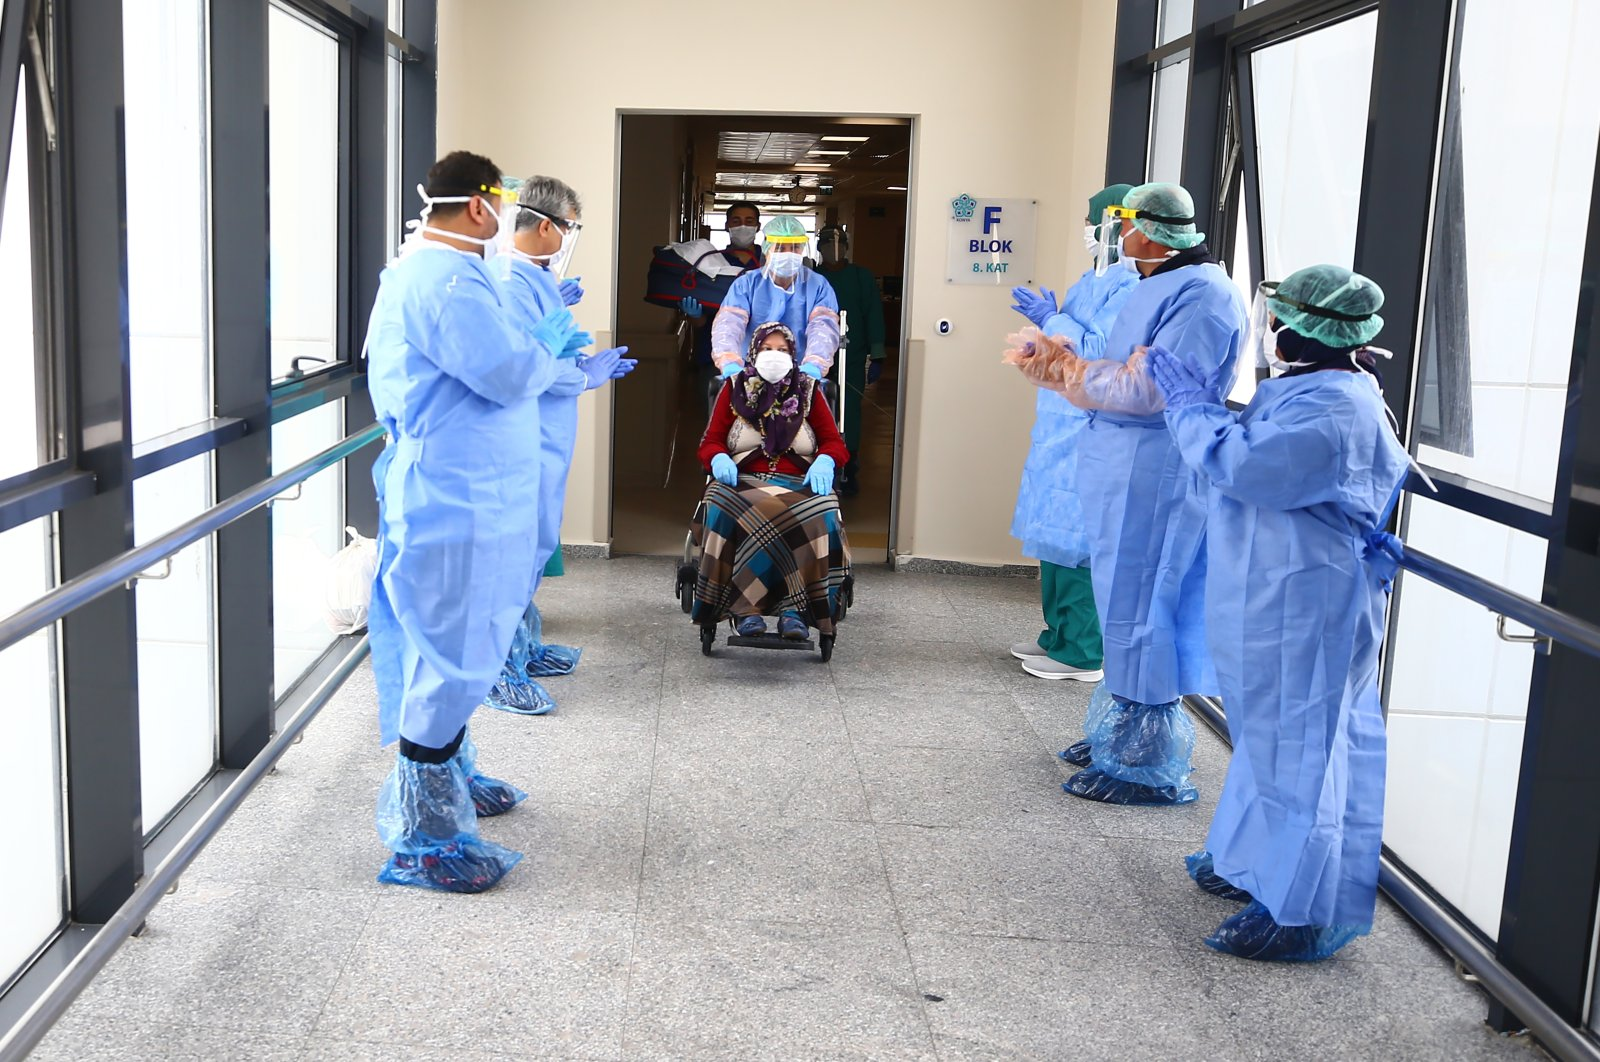 A pregnant woman who was infected with COVID-19 is discharged with full recovery from a hospital in Konya, Turkey, May 5, 2020. (AA Photo)